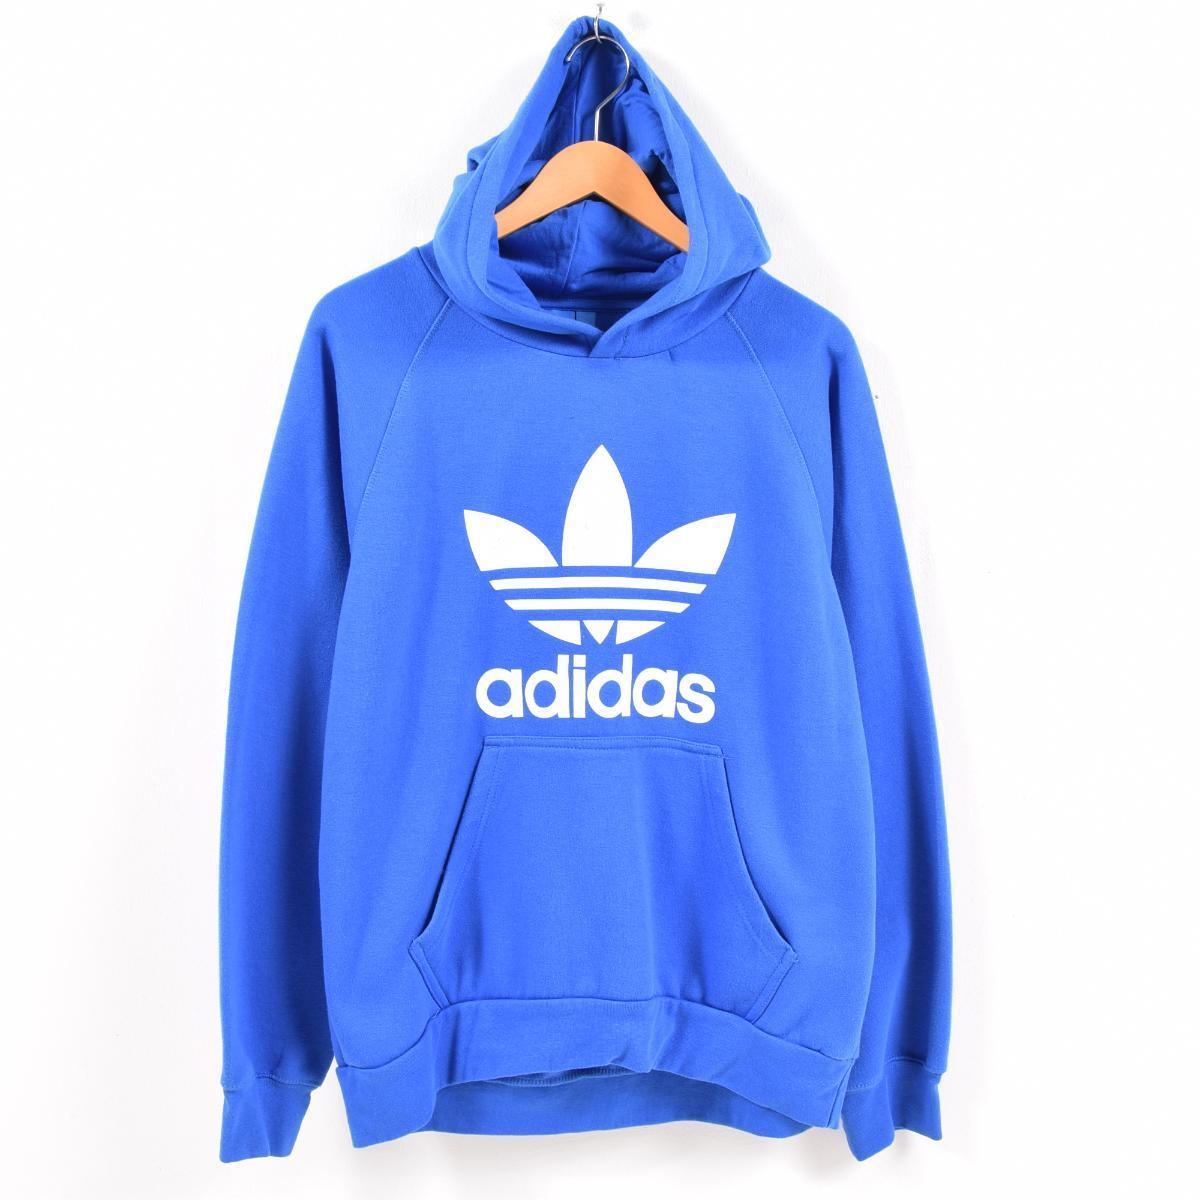 Adidas adidas ORIGINALS originals sweat shirt pullover parka men L wbc1239